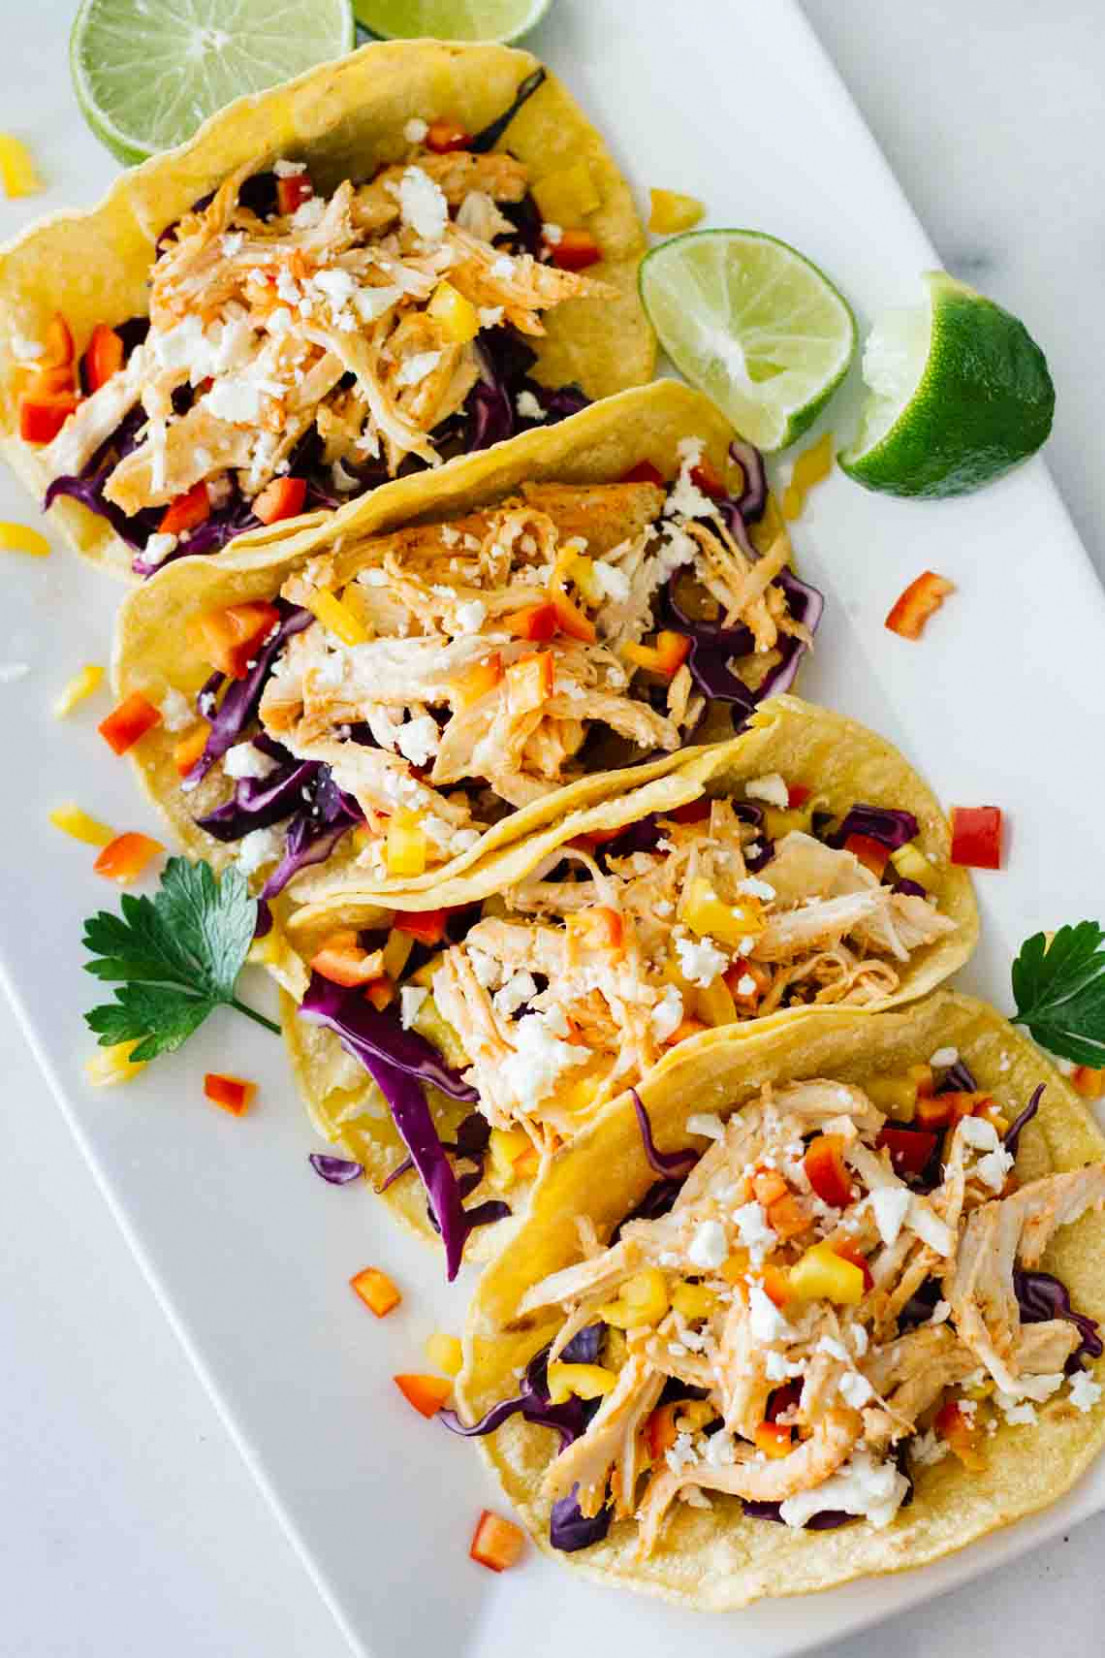 Healthy Sriracha Shredded Chicken Tacos - Jar Of Lemons - recipes healthy quick dinner